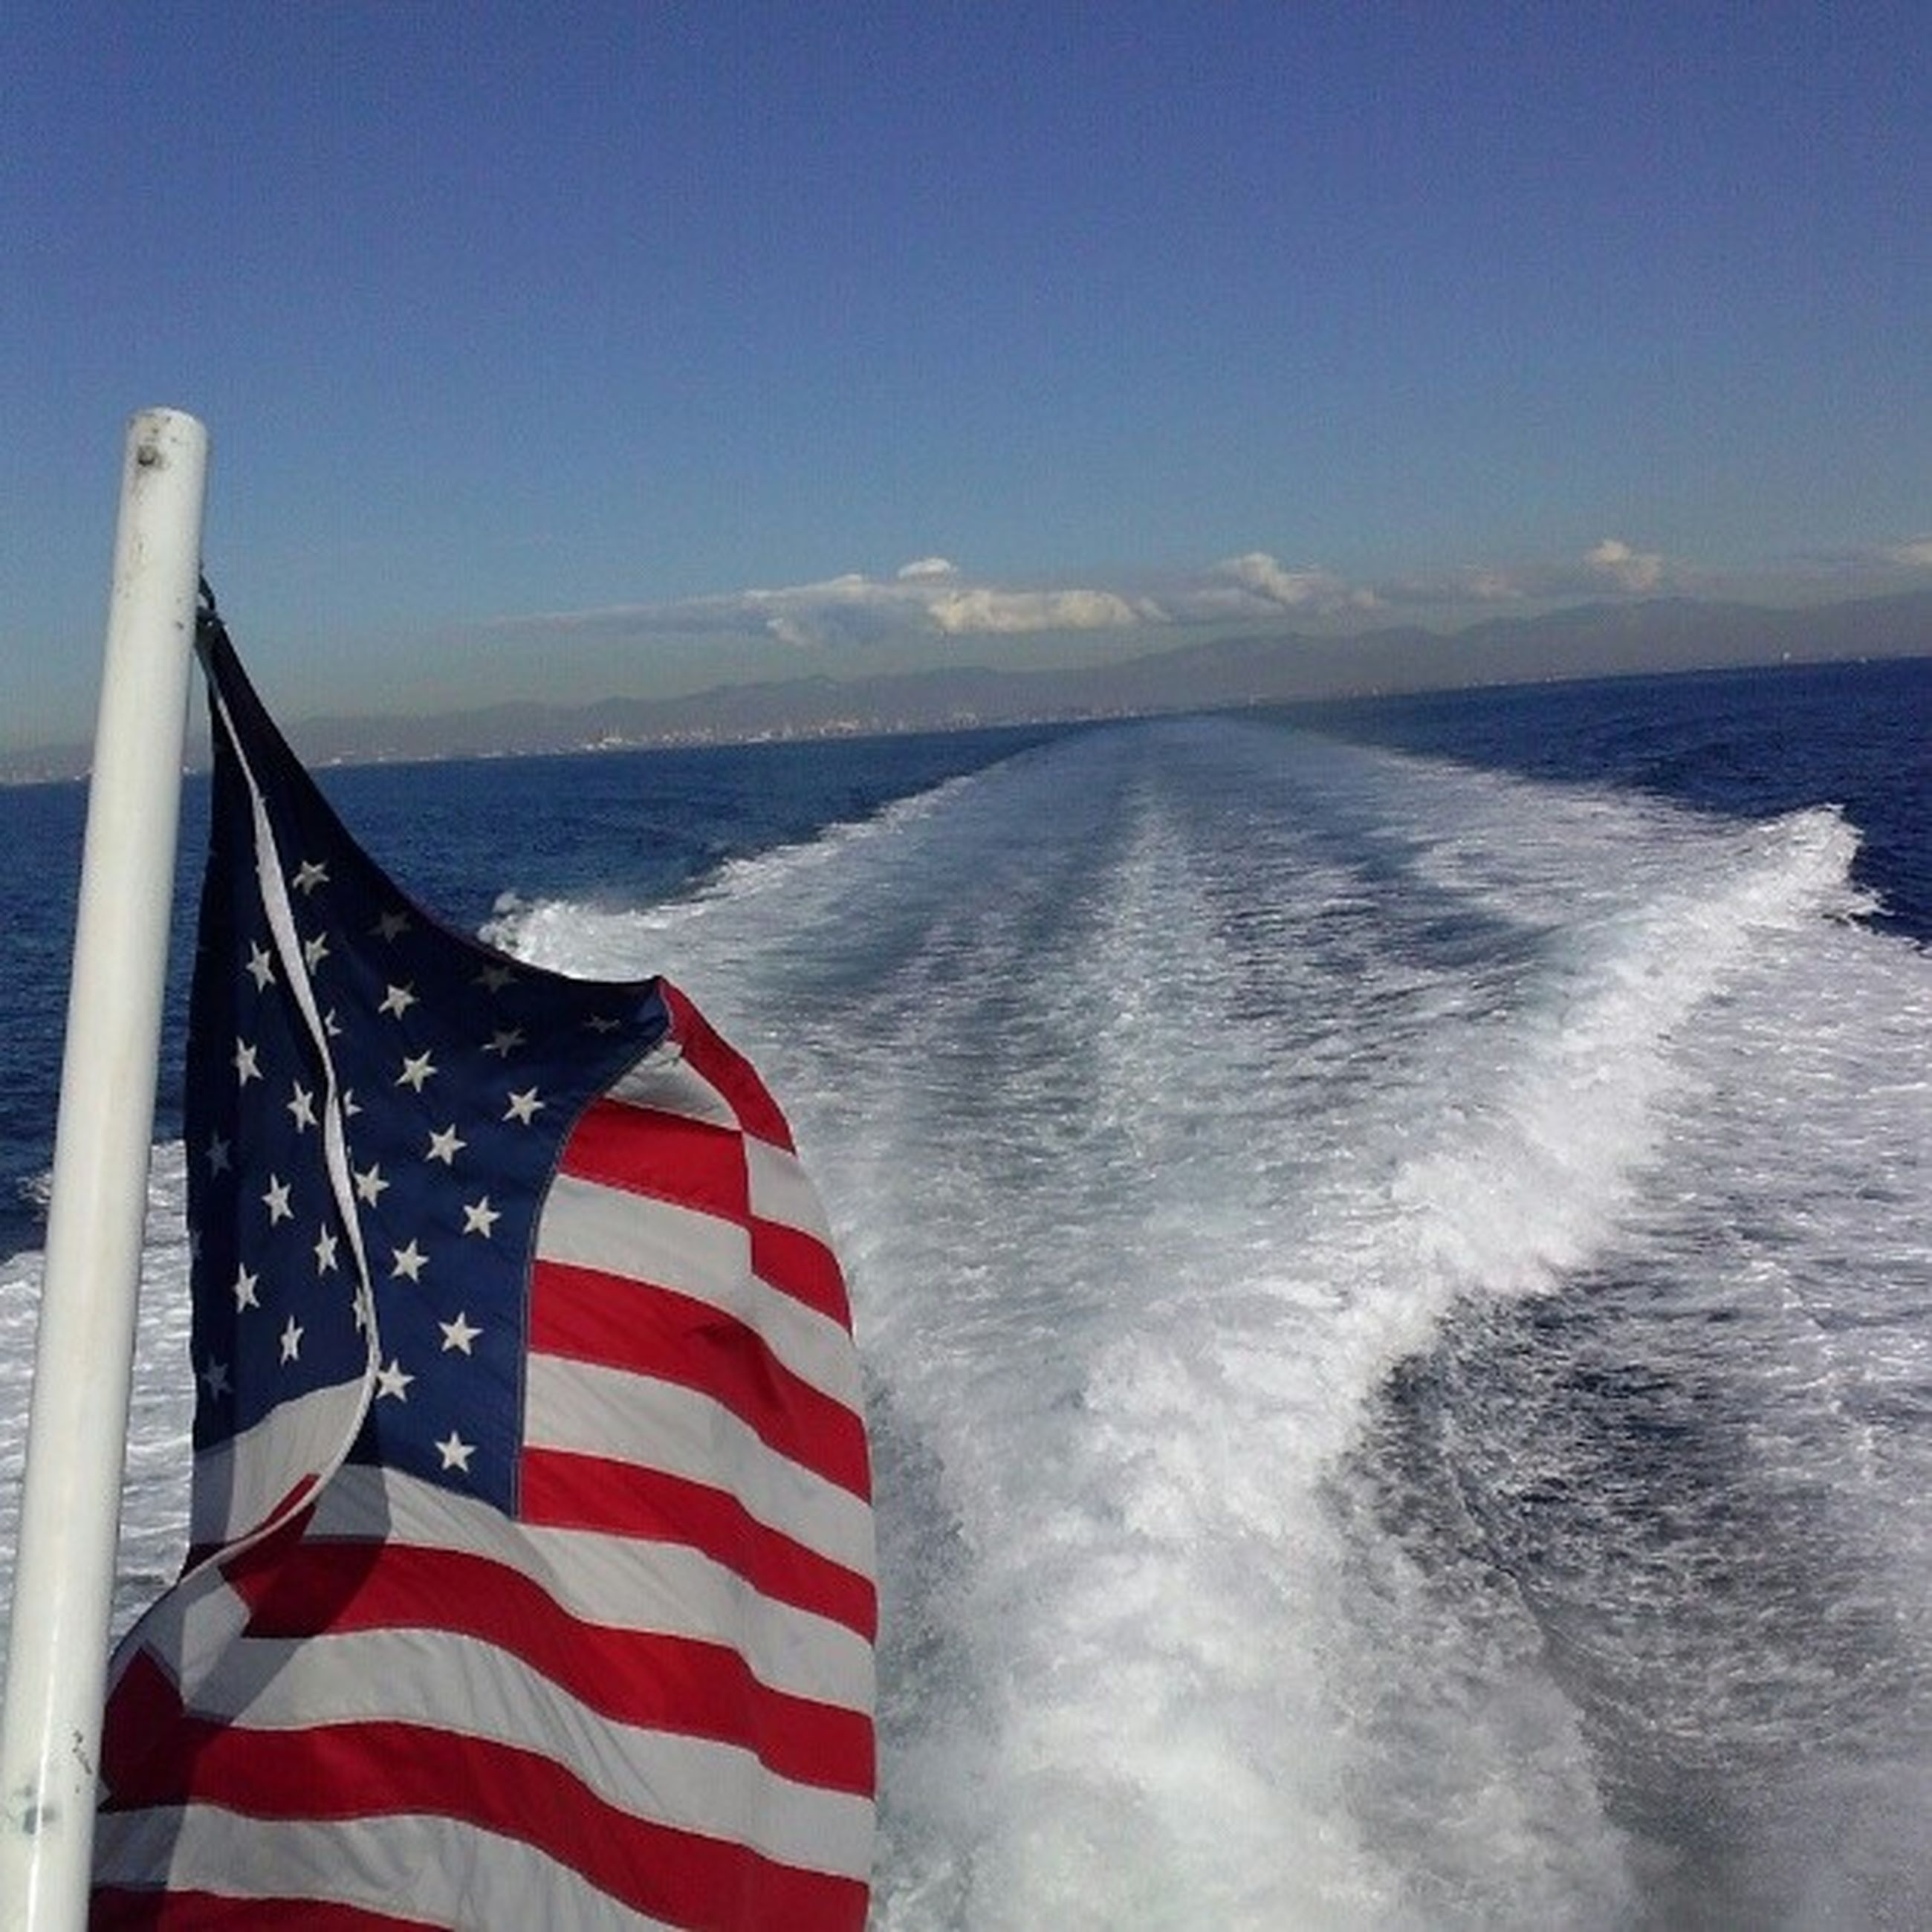 sea, flag, patriotism, identity, national flag, red, sky, american flag, wind, white color, striped, horizon over water, blue, water, scenics, day, nature, outdoors, beauty in nature, culture